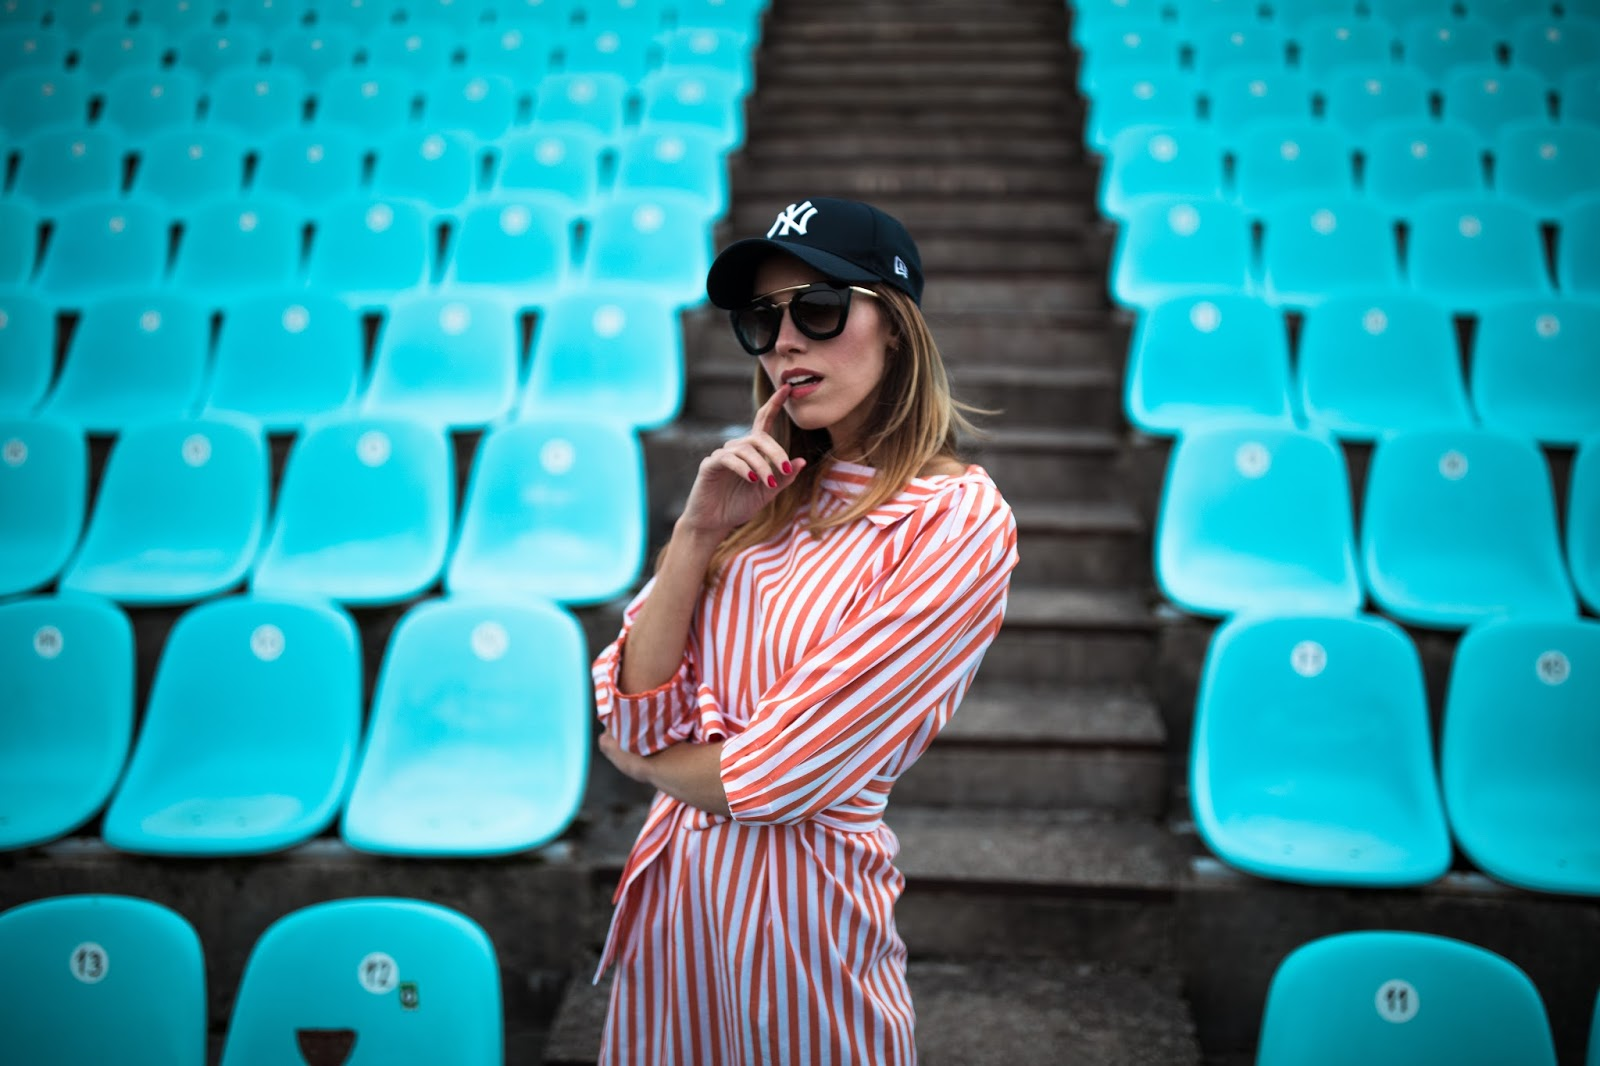 red striped shirt dress cap outfit